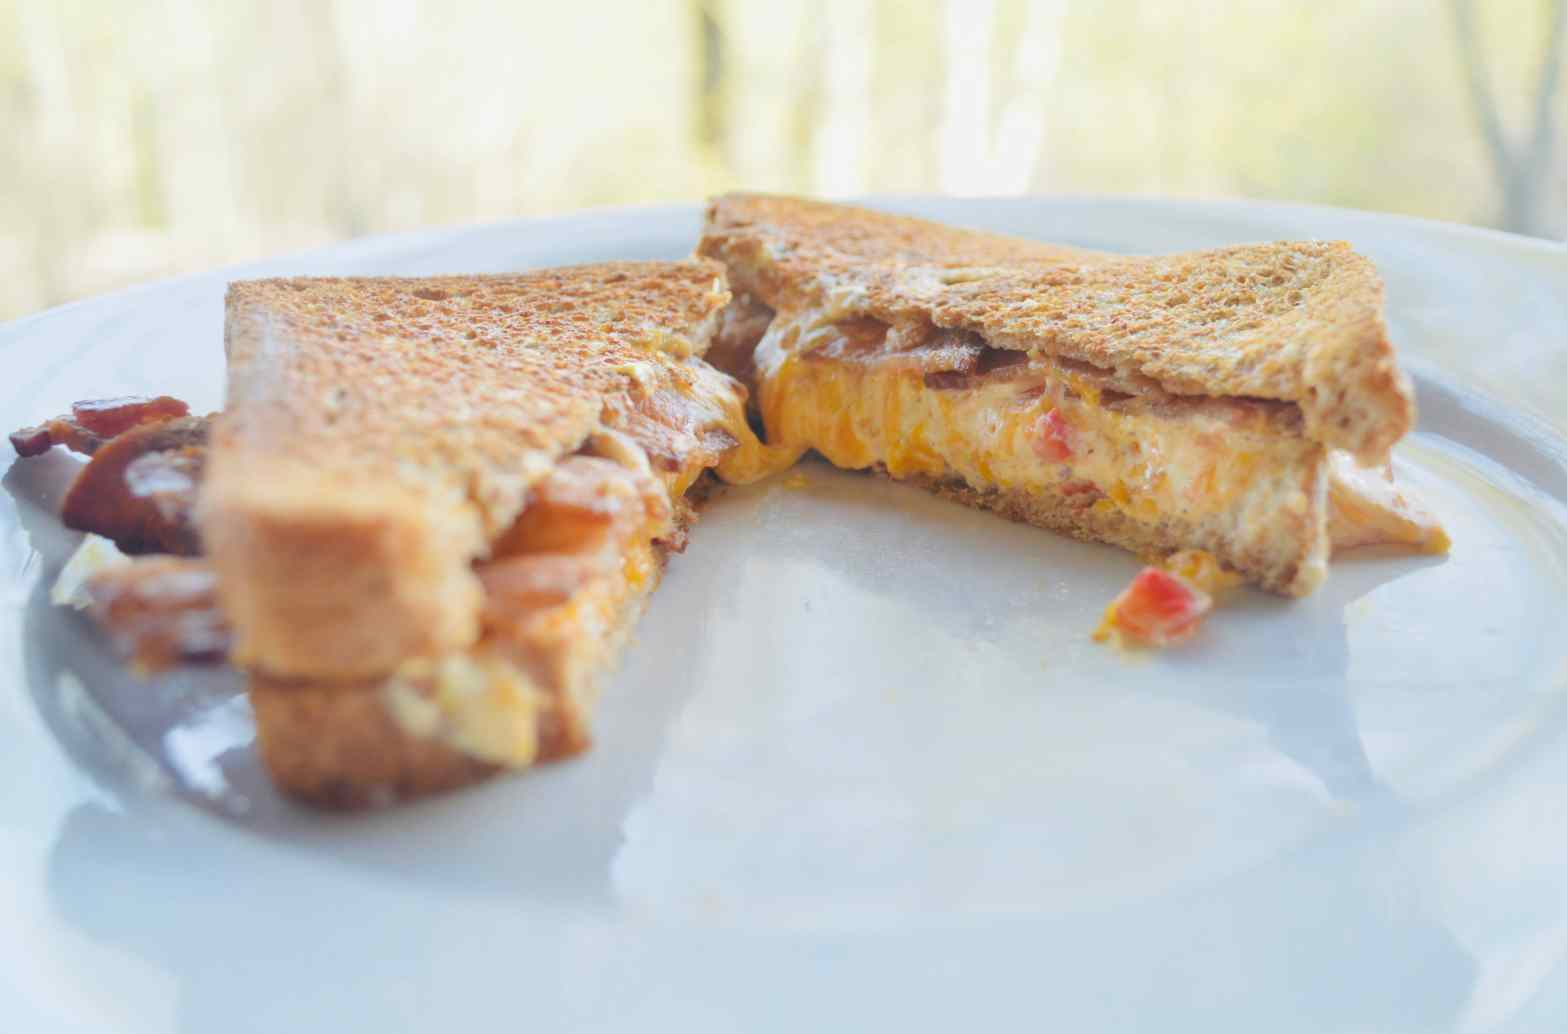 Grilled Pimento Cheese with Bacon Sandwich